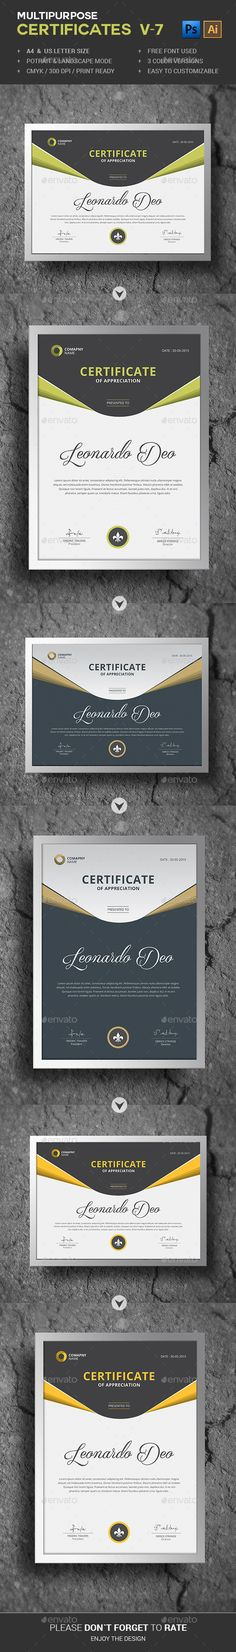 Multi-Purpose Certificate Templates Print Pinterest - business certificates templates